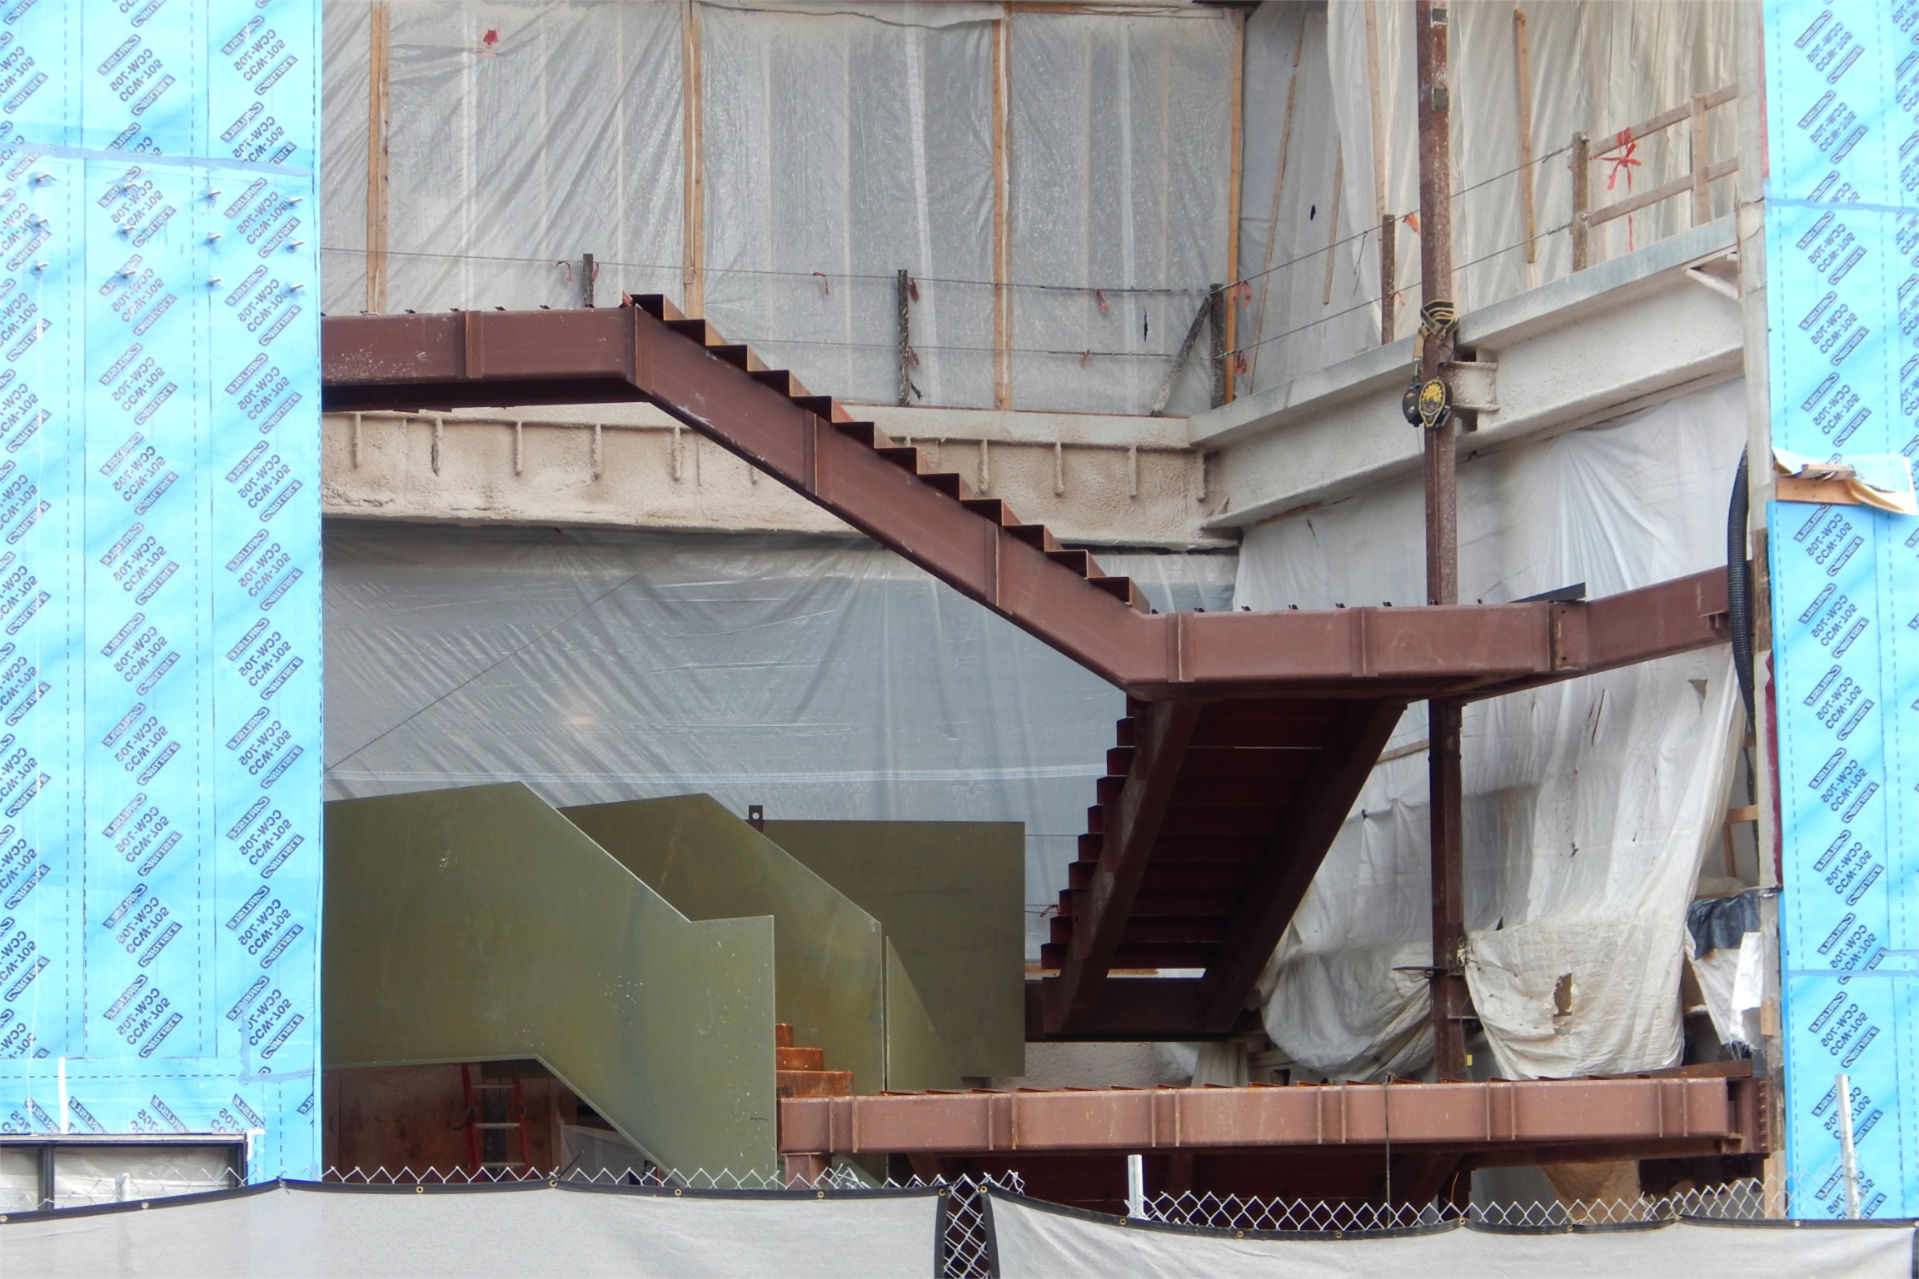 Shown on Sept. 22, the Monumental Stairs have reached the Bonney center's second floor. (道格赫布利/500万彩票网)